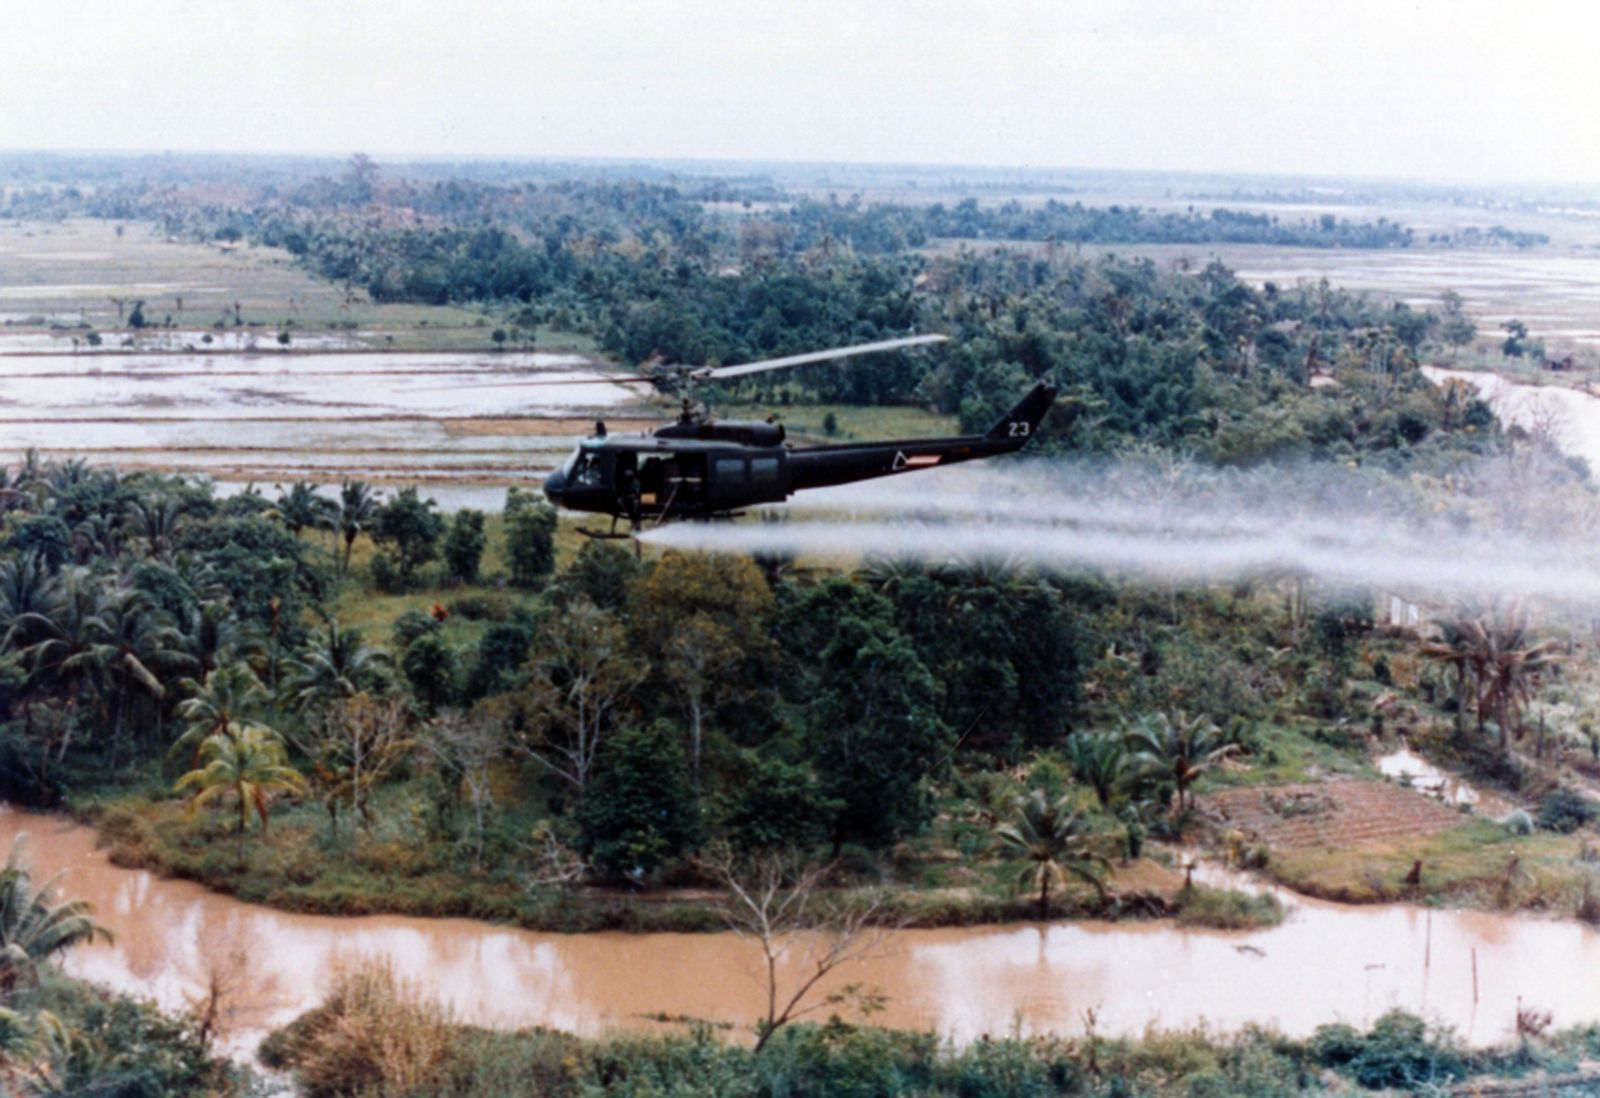 Vietnam: A US Huey helicopter spraying agent orange during Operation Ranch Hand, c. 1965